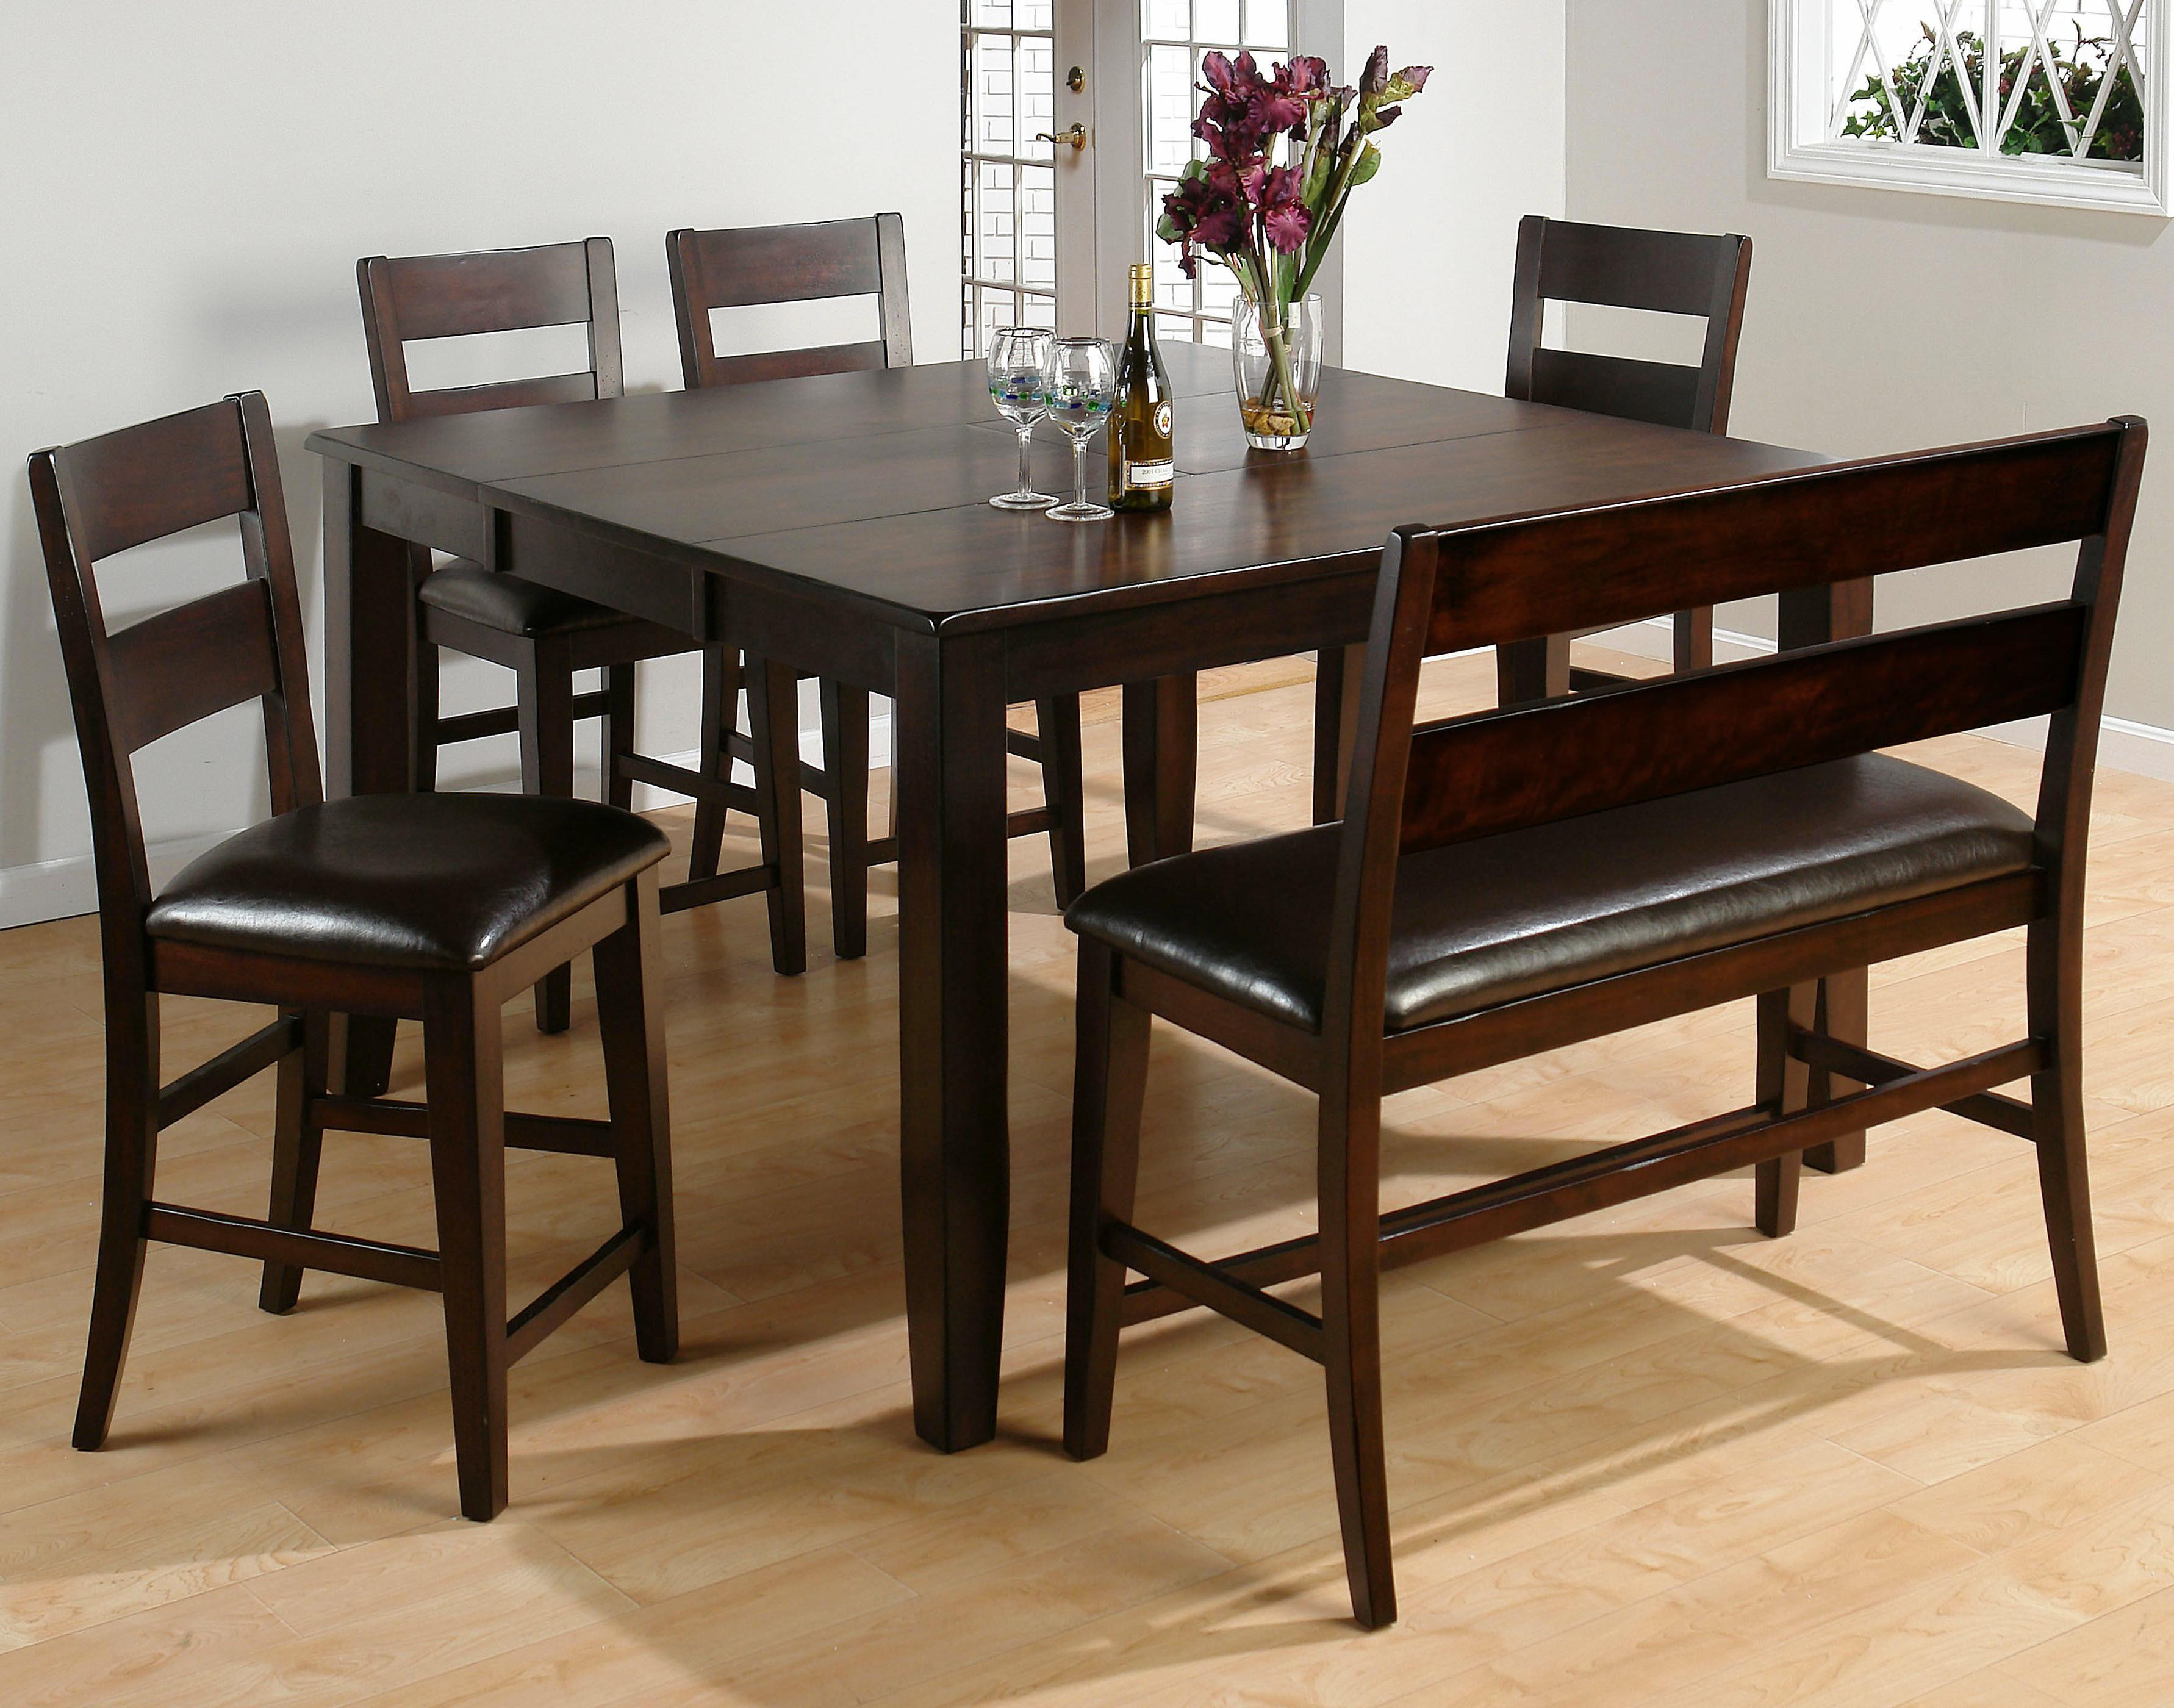 Jofran Dark Rustic Prairie 5-Piece Counter Height Butterfly Leaf Table - Item Number: 972-60+BS761KD+BS19KD